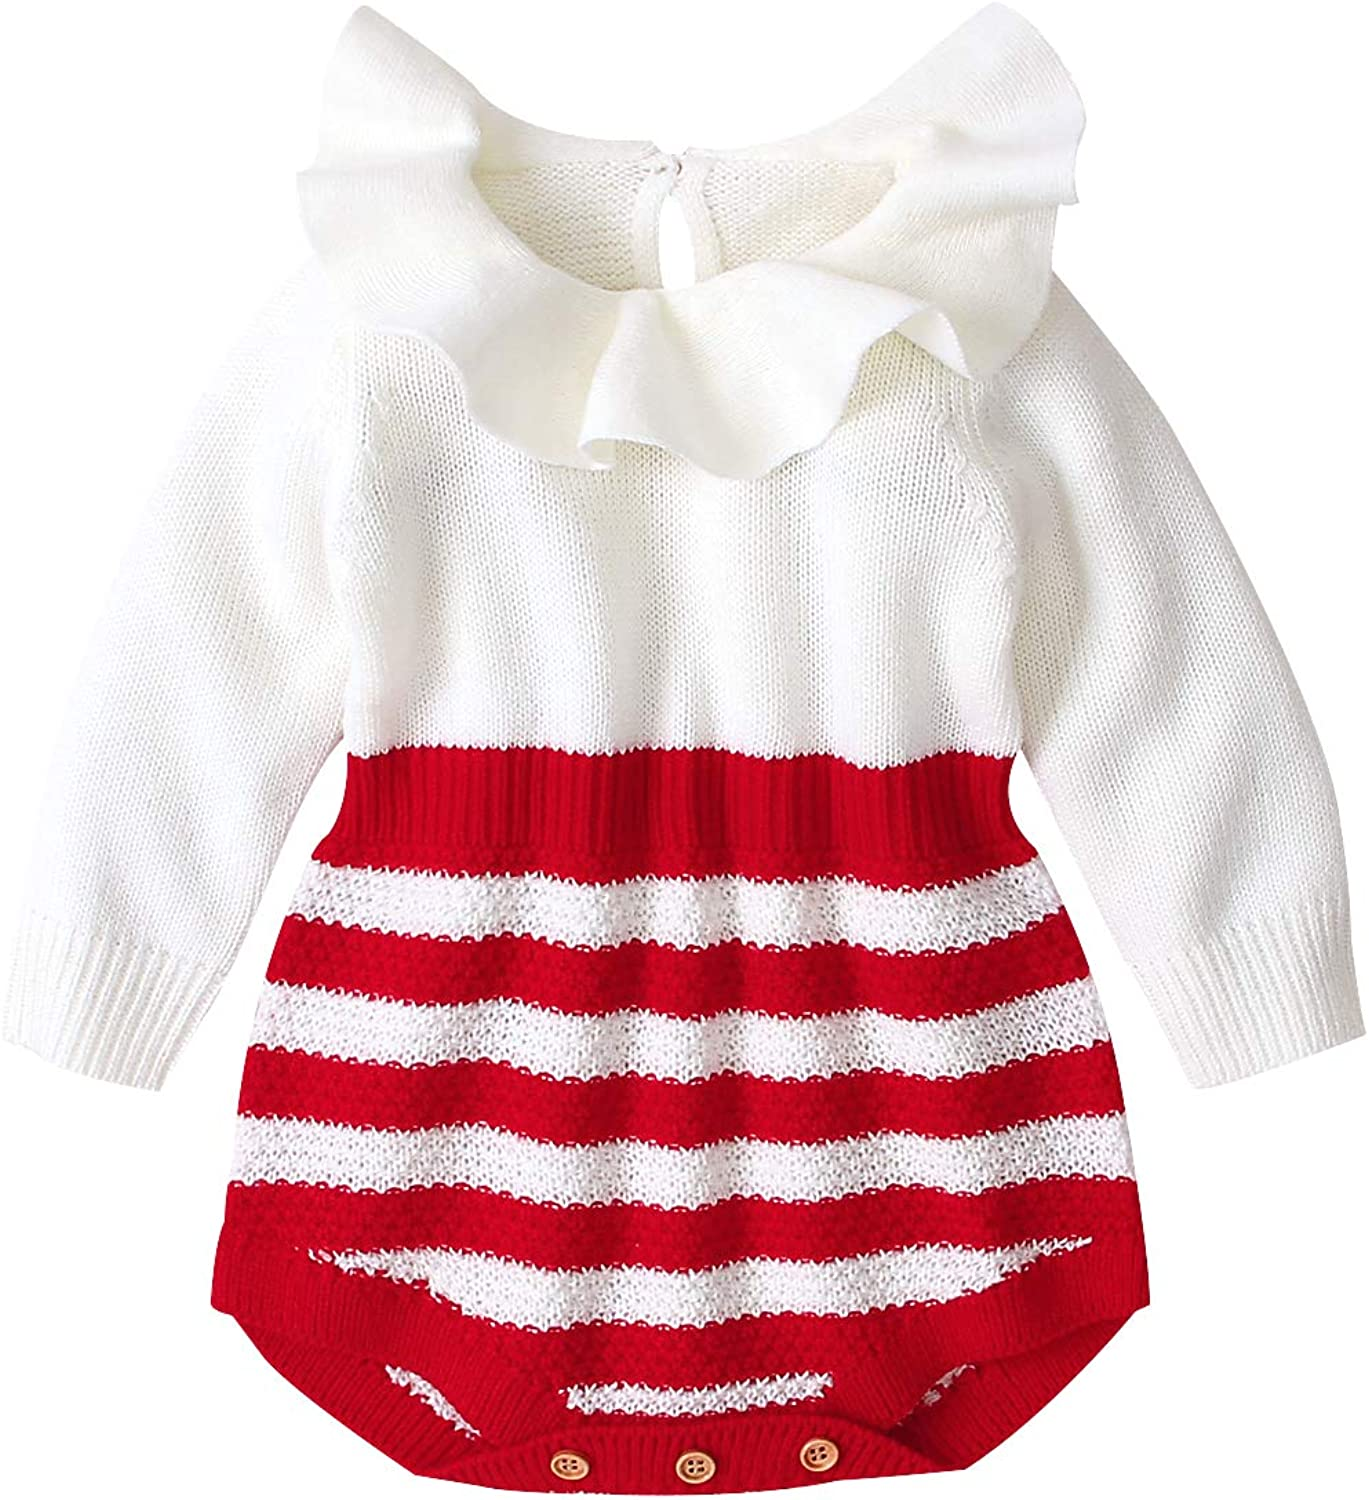 Baby Girl Sweater Rompers Infant Knitted Long Sleeve One-Piece Rompers  Bodysuit Jumpsuit Fall Winter Clothes